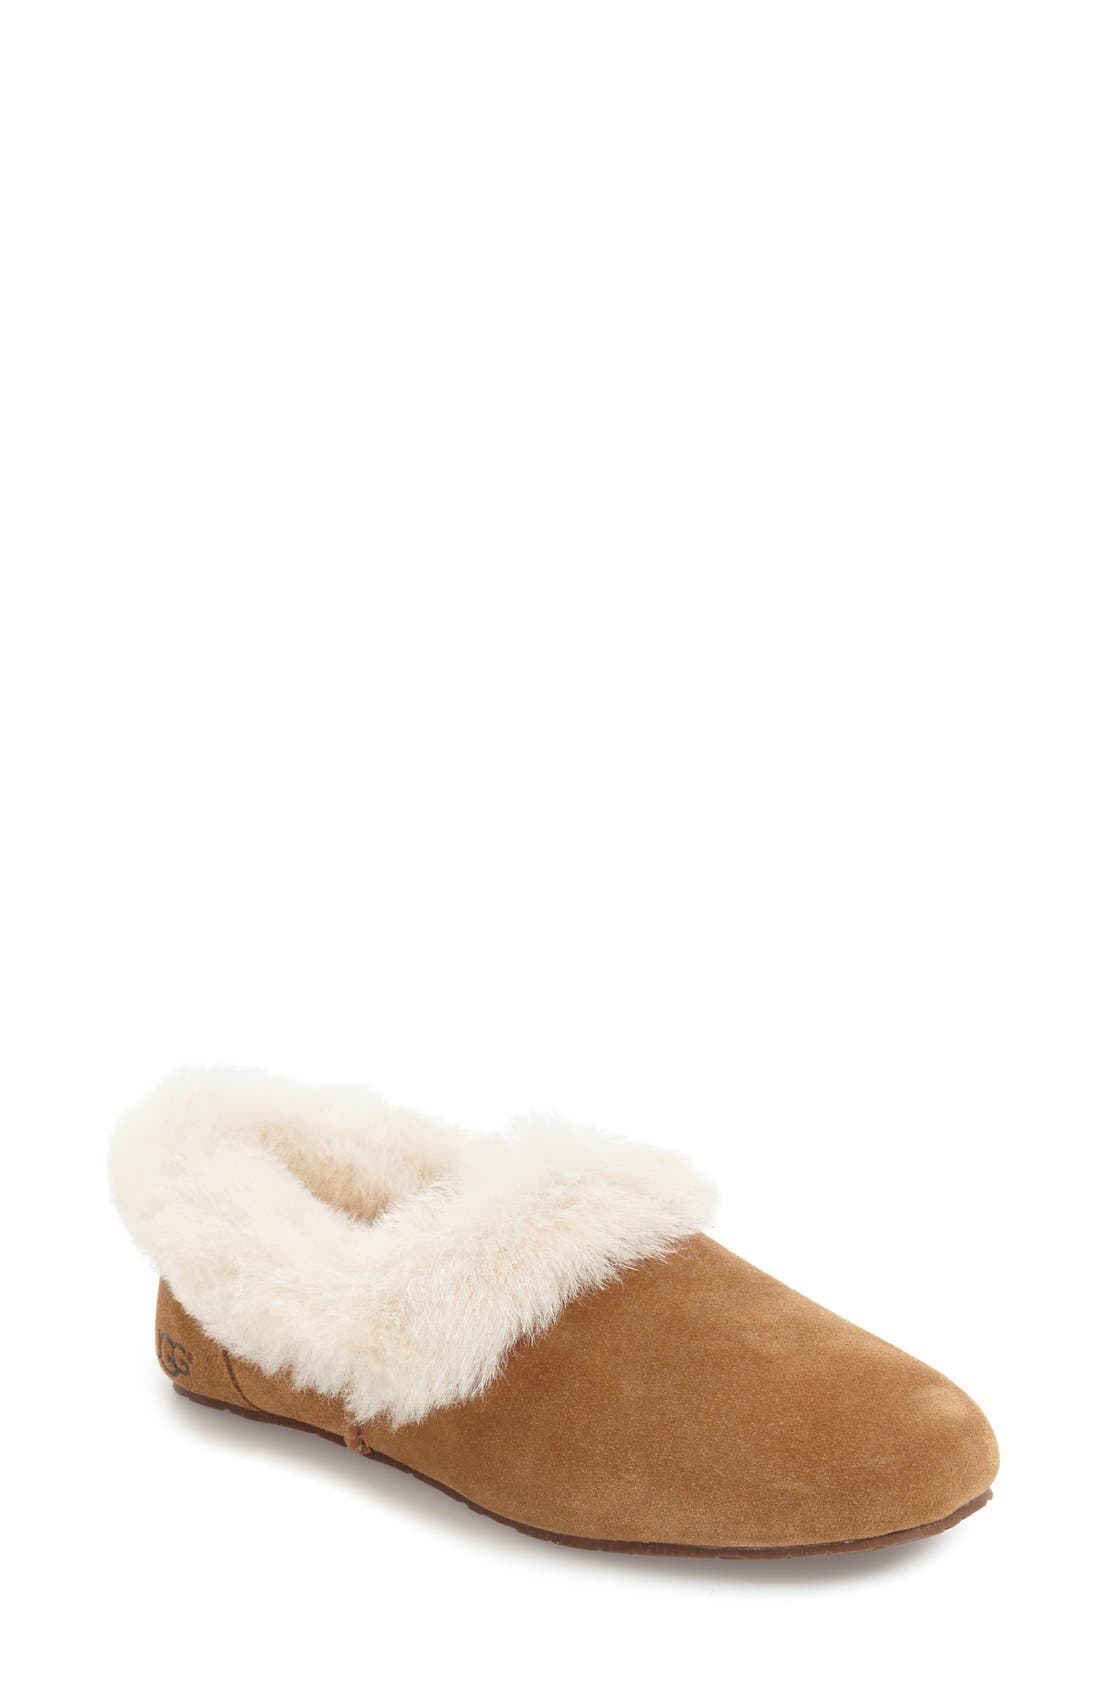 Alternate Image 1 Selected - UGG® Kendyl Genuine Shearling Slipper (Women)